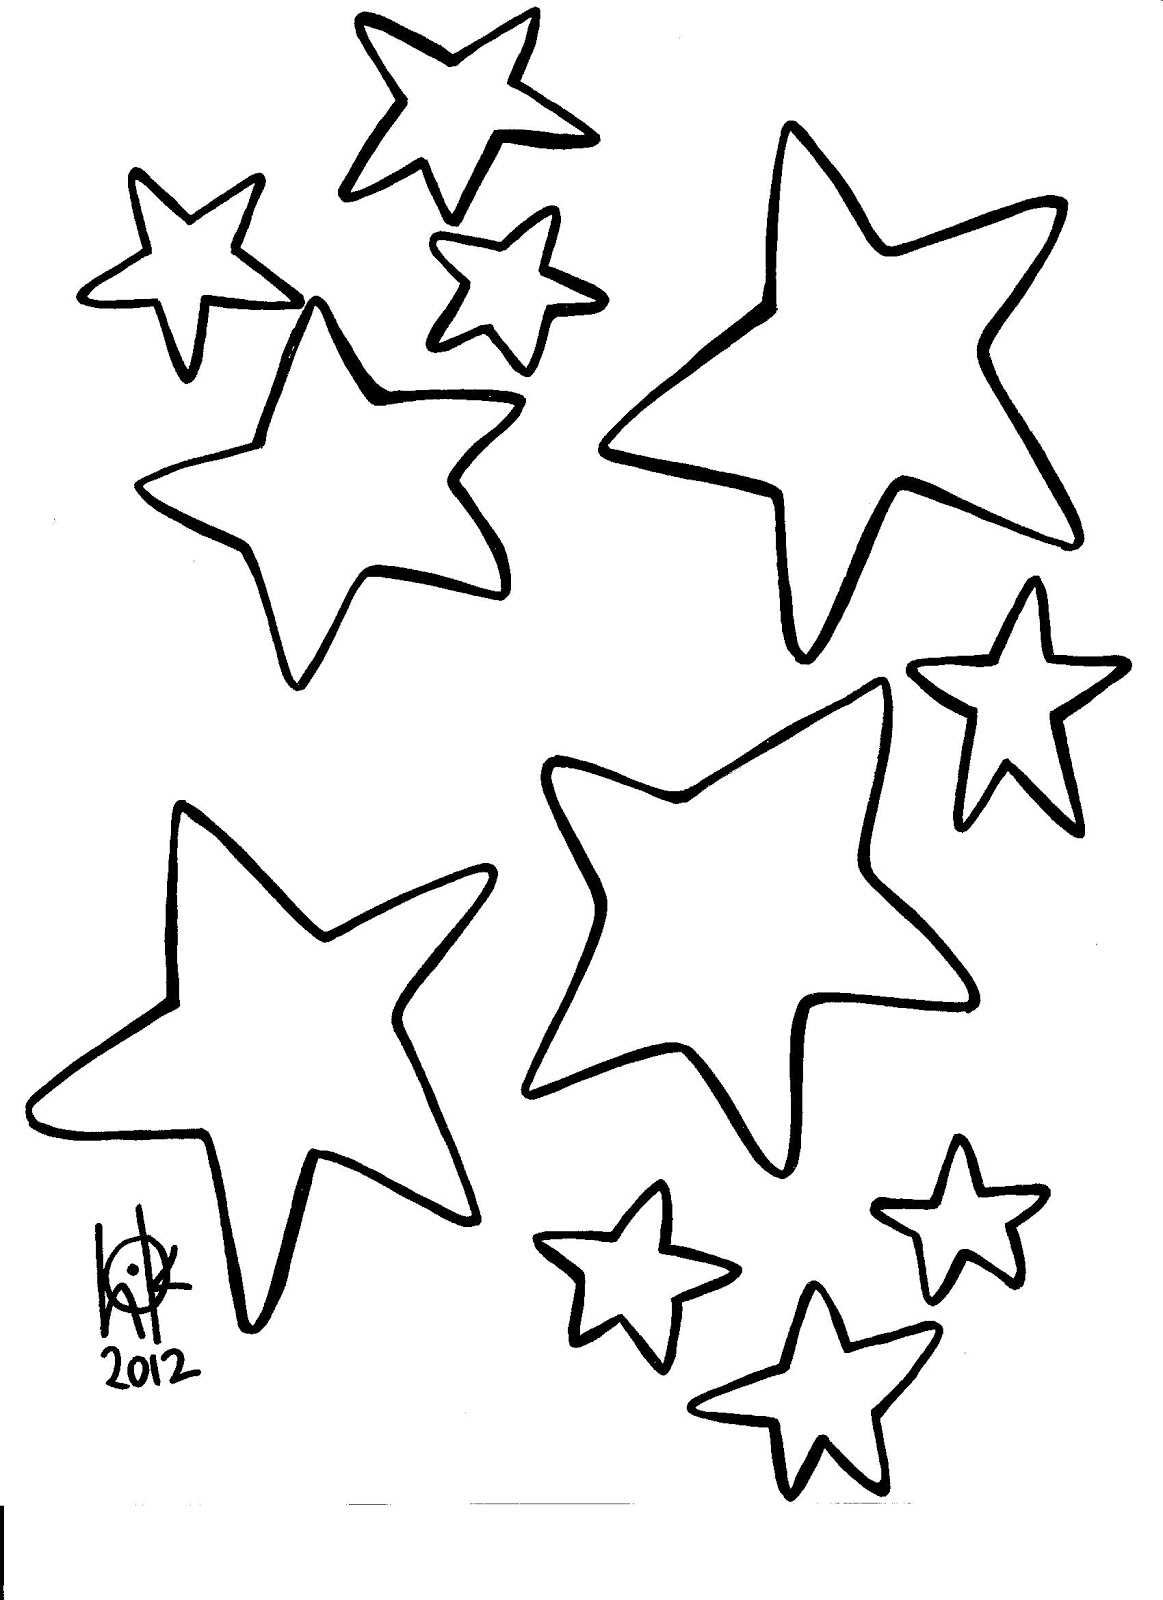 stars coloring pages free printable star coloring pages for kids stars coloring pages